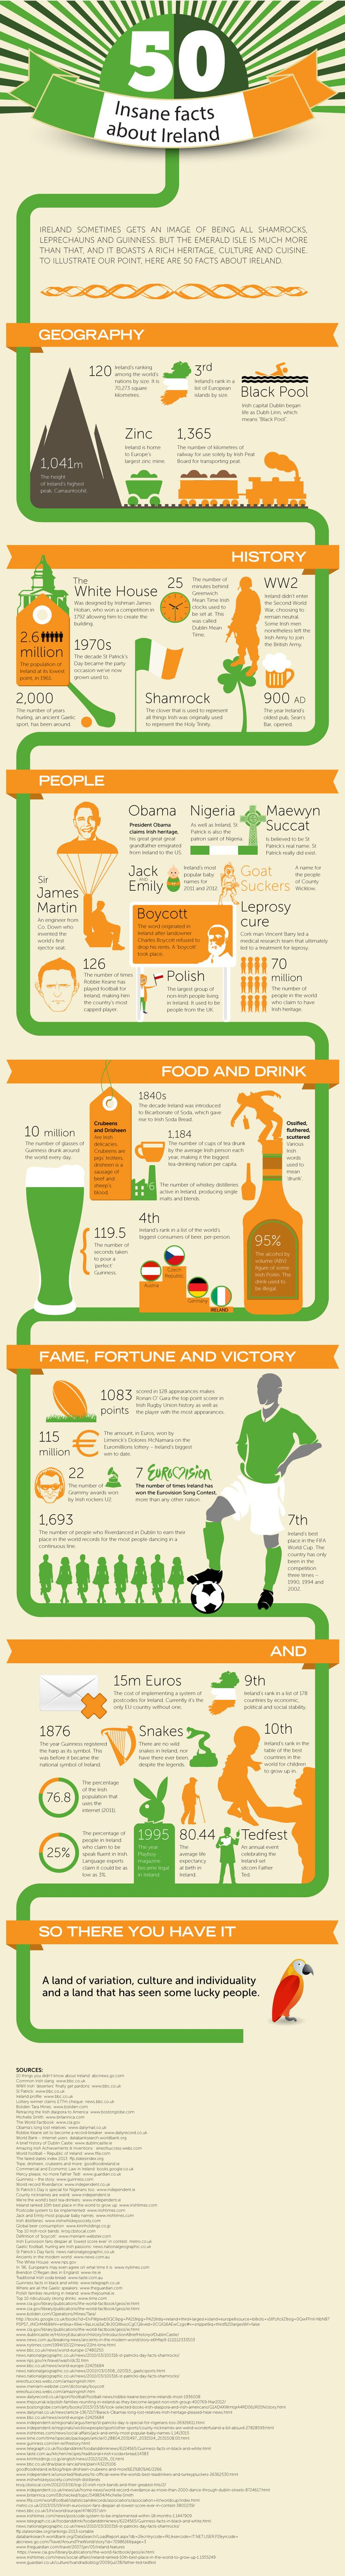 50 Insane Facts about Ireland #Infographic #Facts #Travel